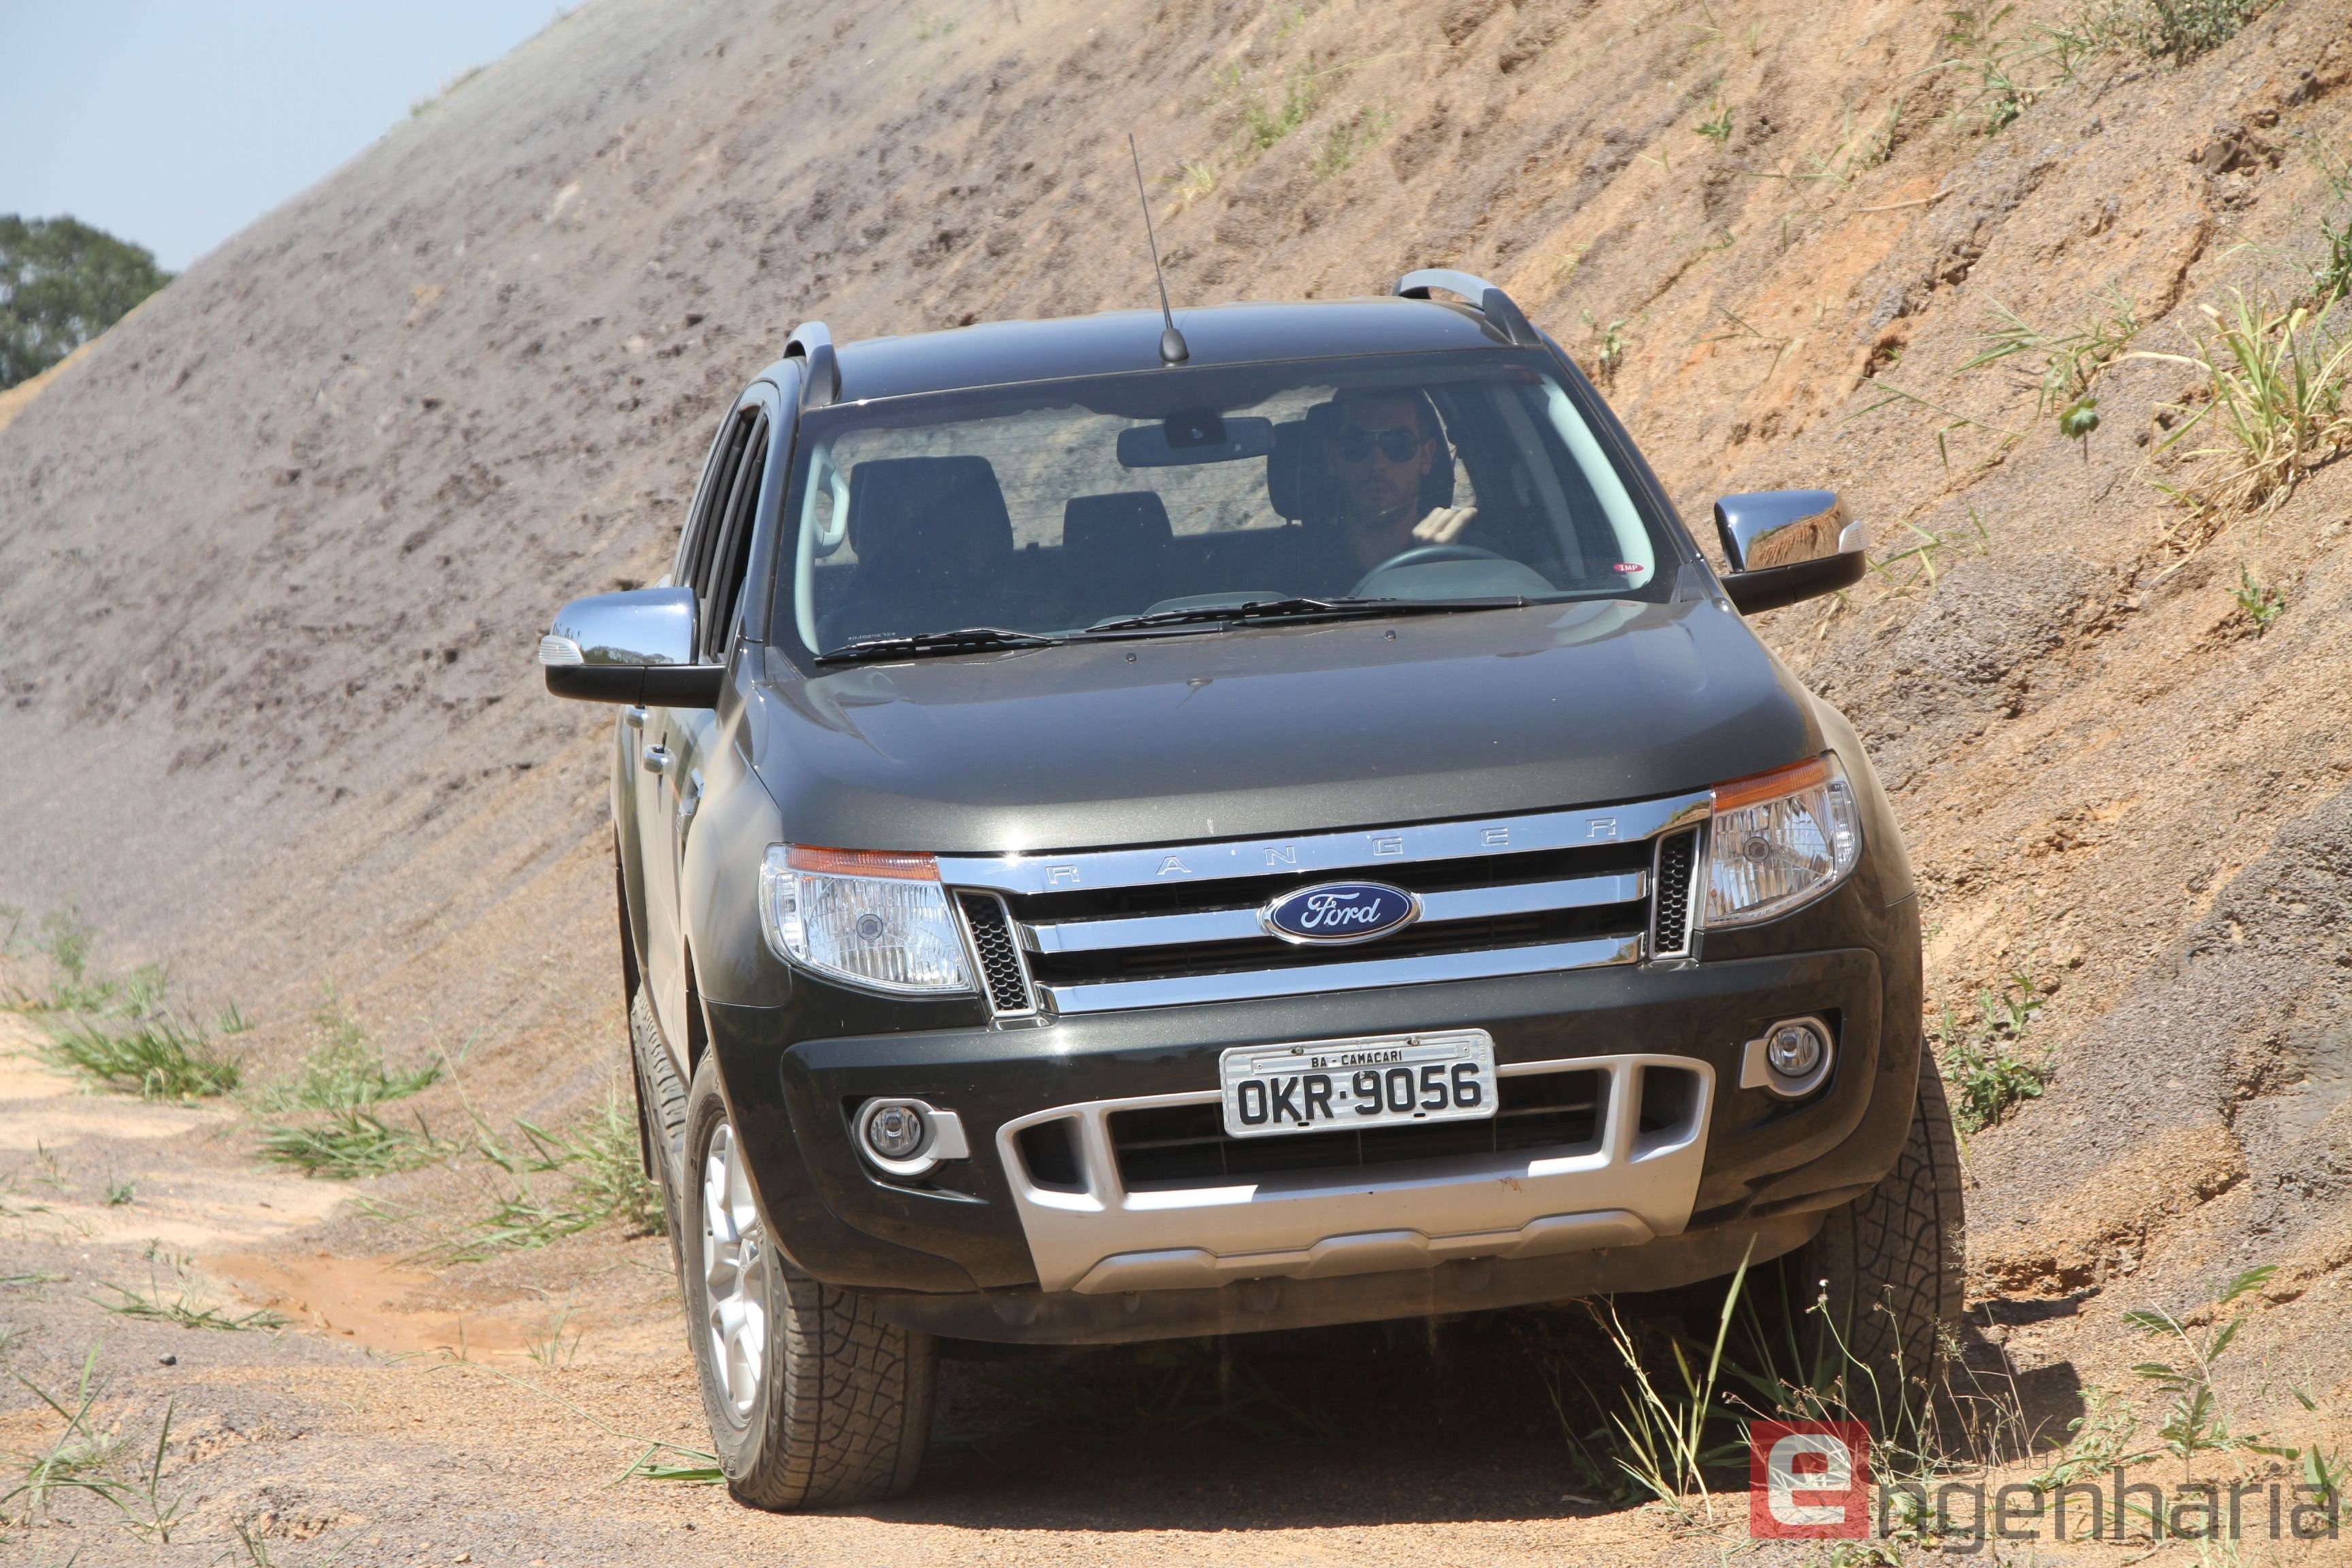 review_bee-ford_ranger-blog-da-engenharia-020